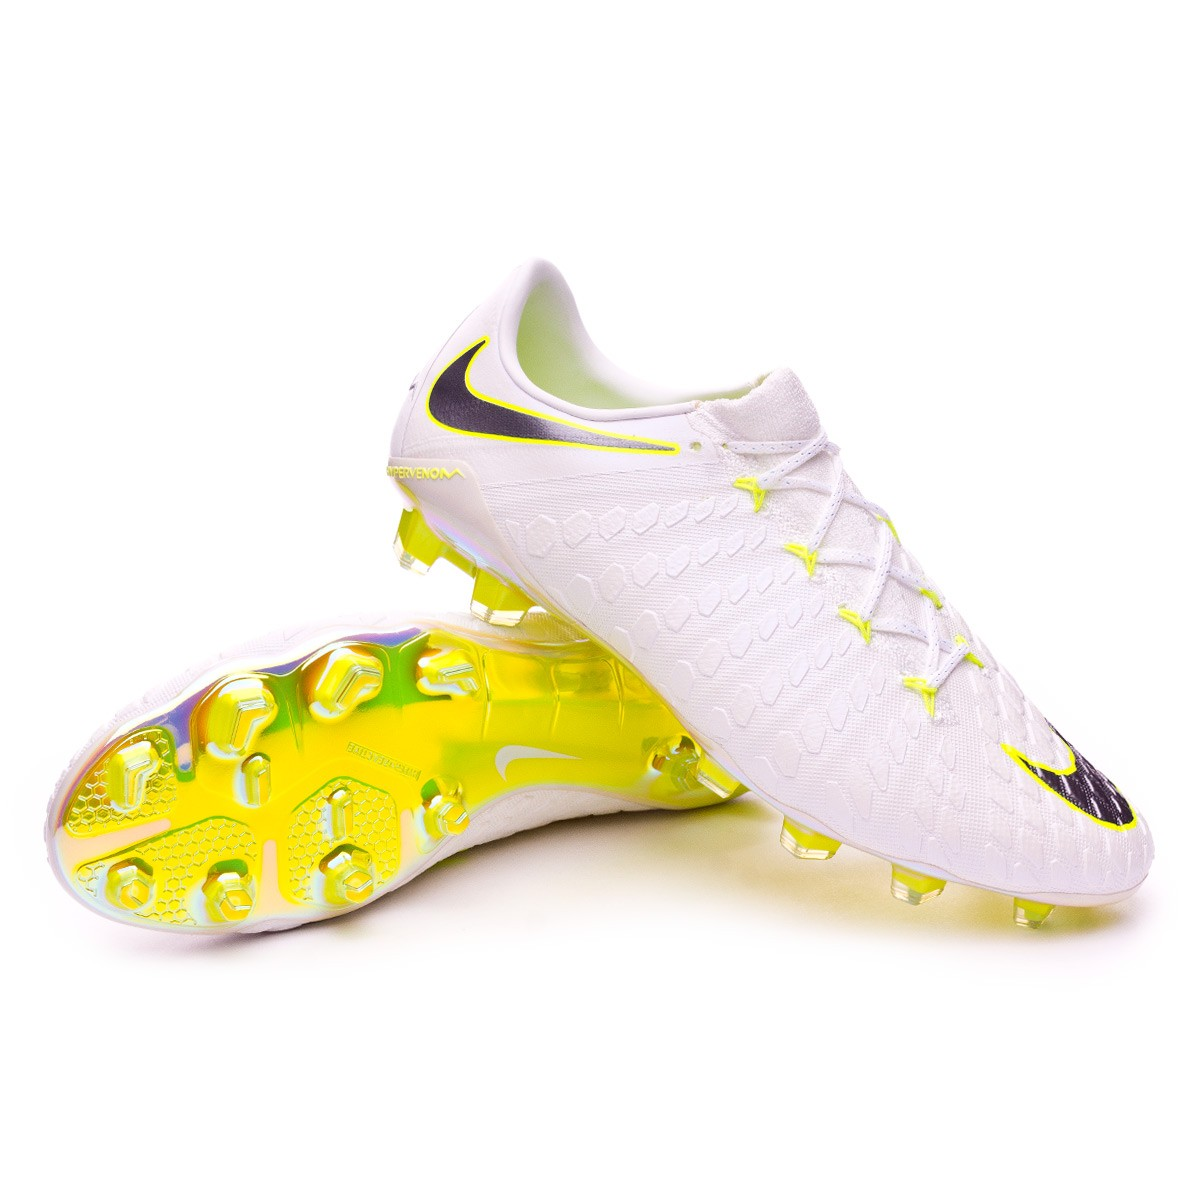 d3e3229e0b7 Nike Hypervenom Phantom III Elite FG Football Boots. White-Metallic ...